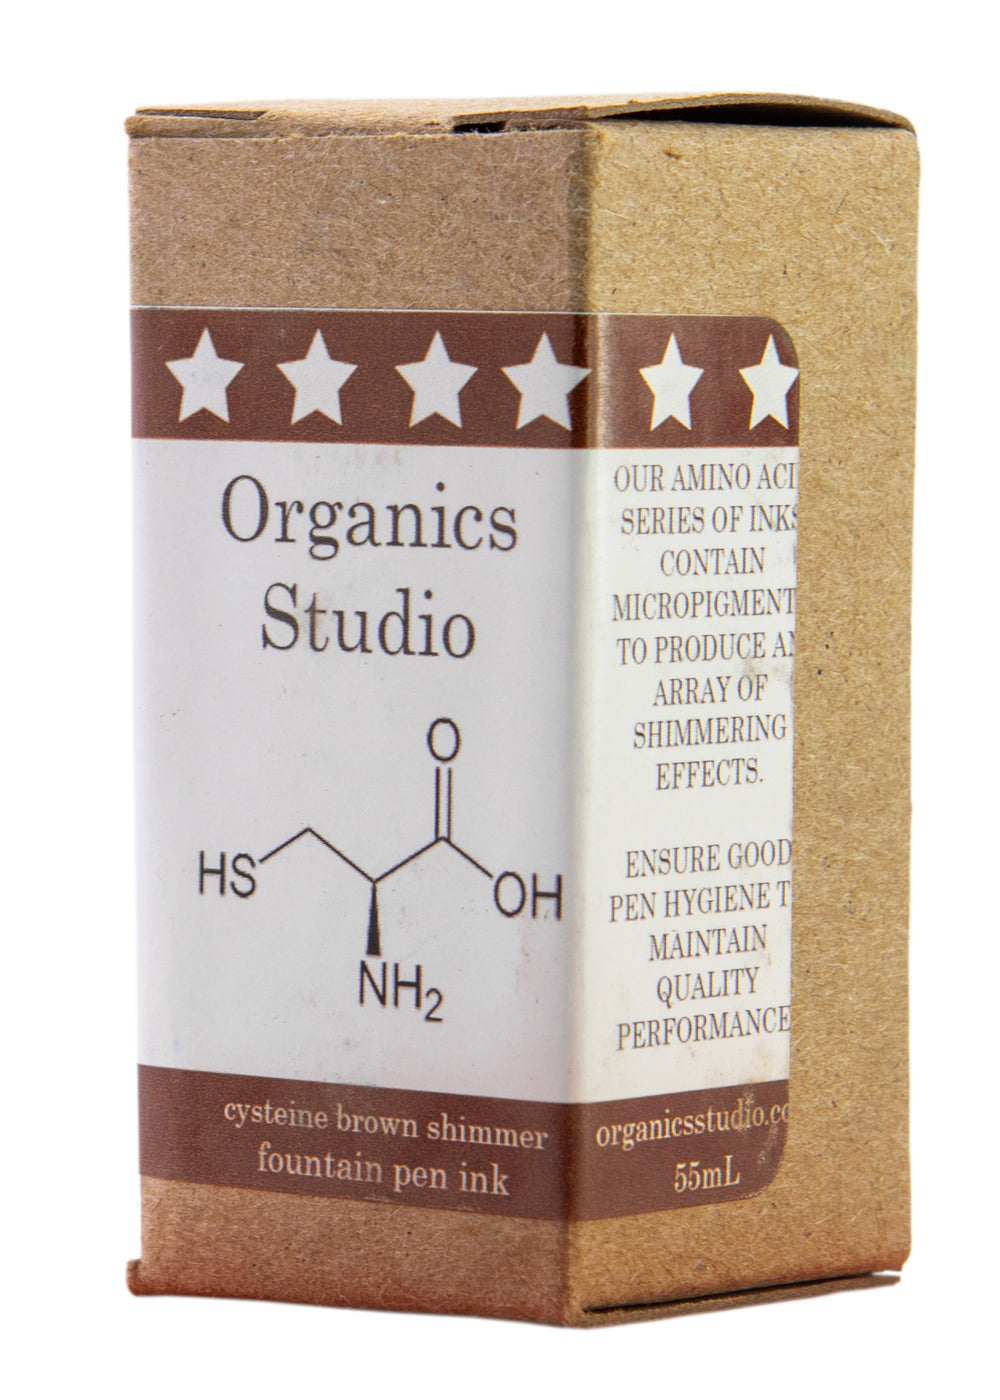 Organics Studio Elements Cysteine Brown Shimmer